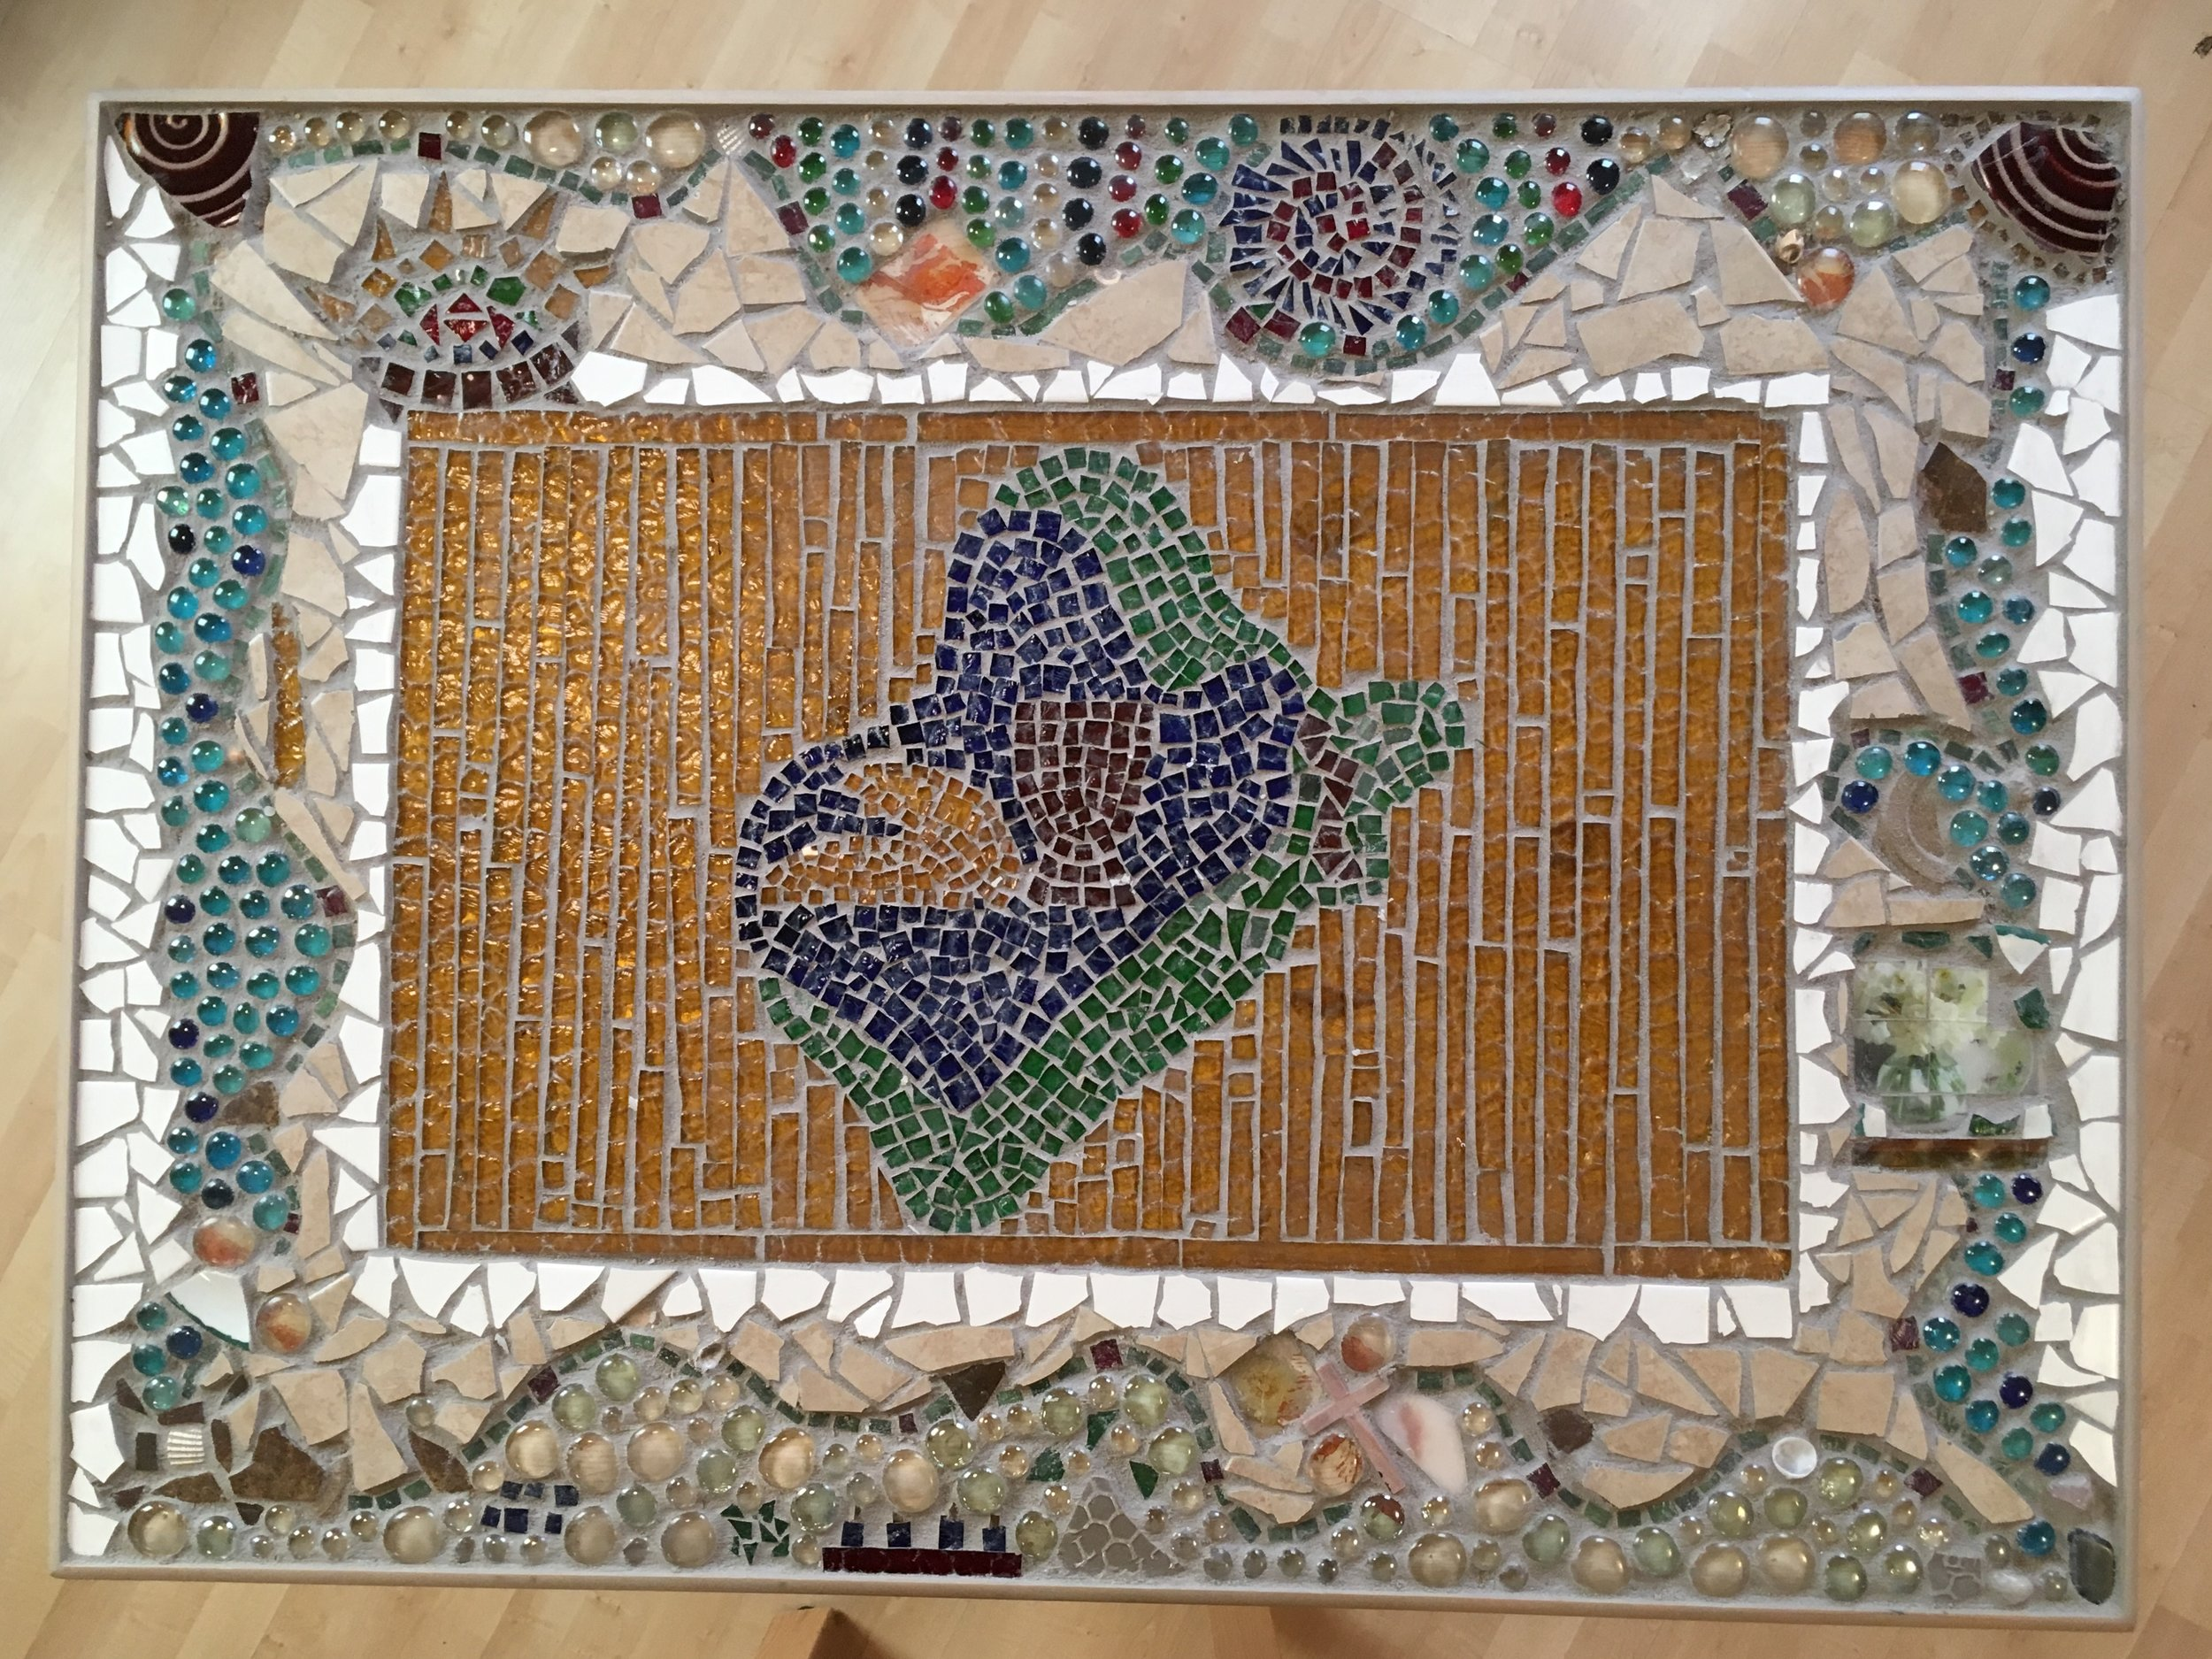 Mosaic Table.jpg